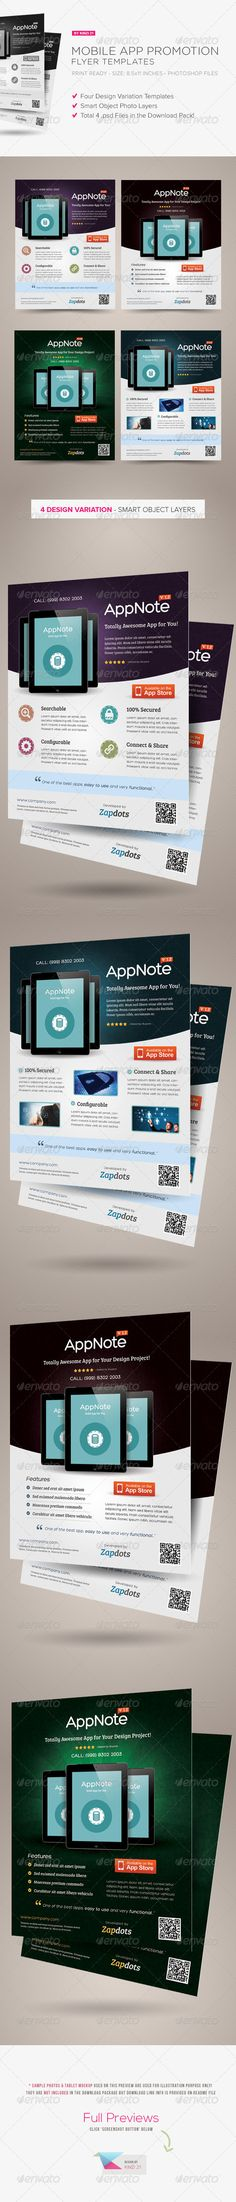 Mobile App Promotion Flyers #GraphicRiver The Best Seller Mobile App Flyer on Graphic River! A great-alternative flyer template ideal for promoting or advertising your mobile apps (iphone, android, windows). These templates can also be used for a magazine